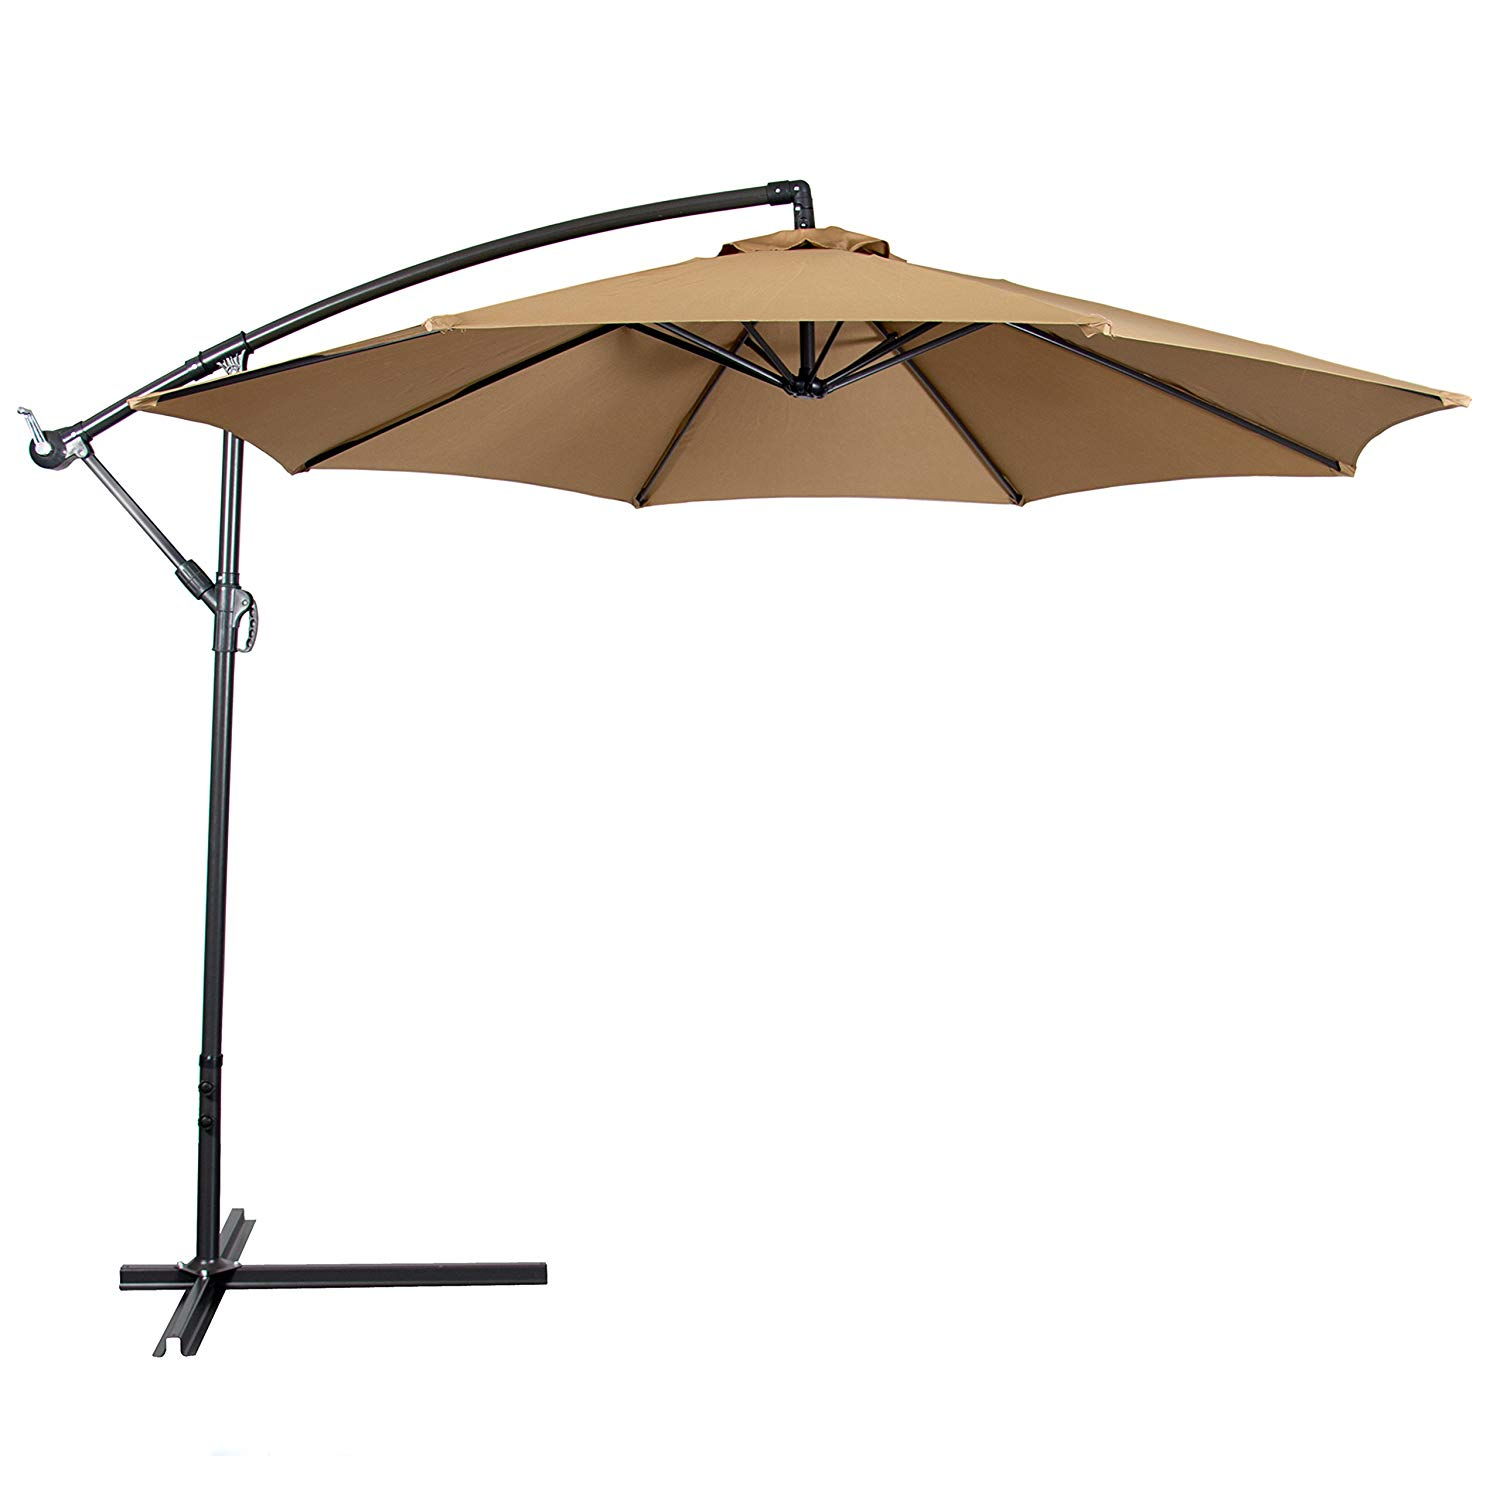 patio umbrellas amazon.com : best choice products patio umbrella offset 10u0027 hanging umbrella YWJFIHT